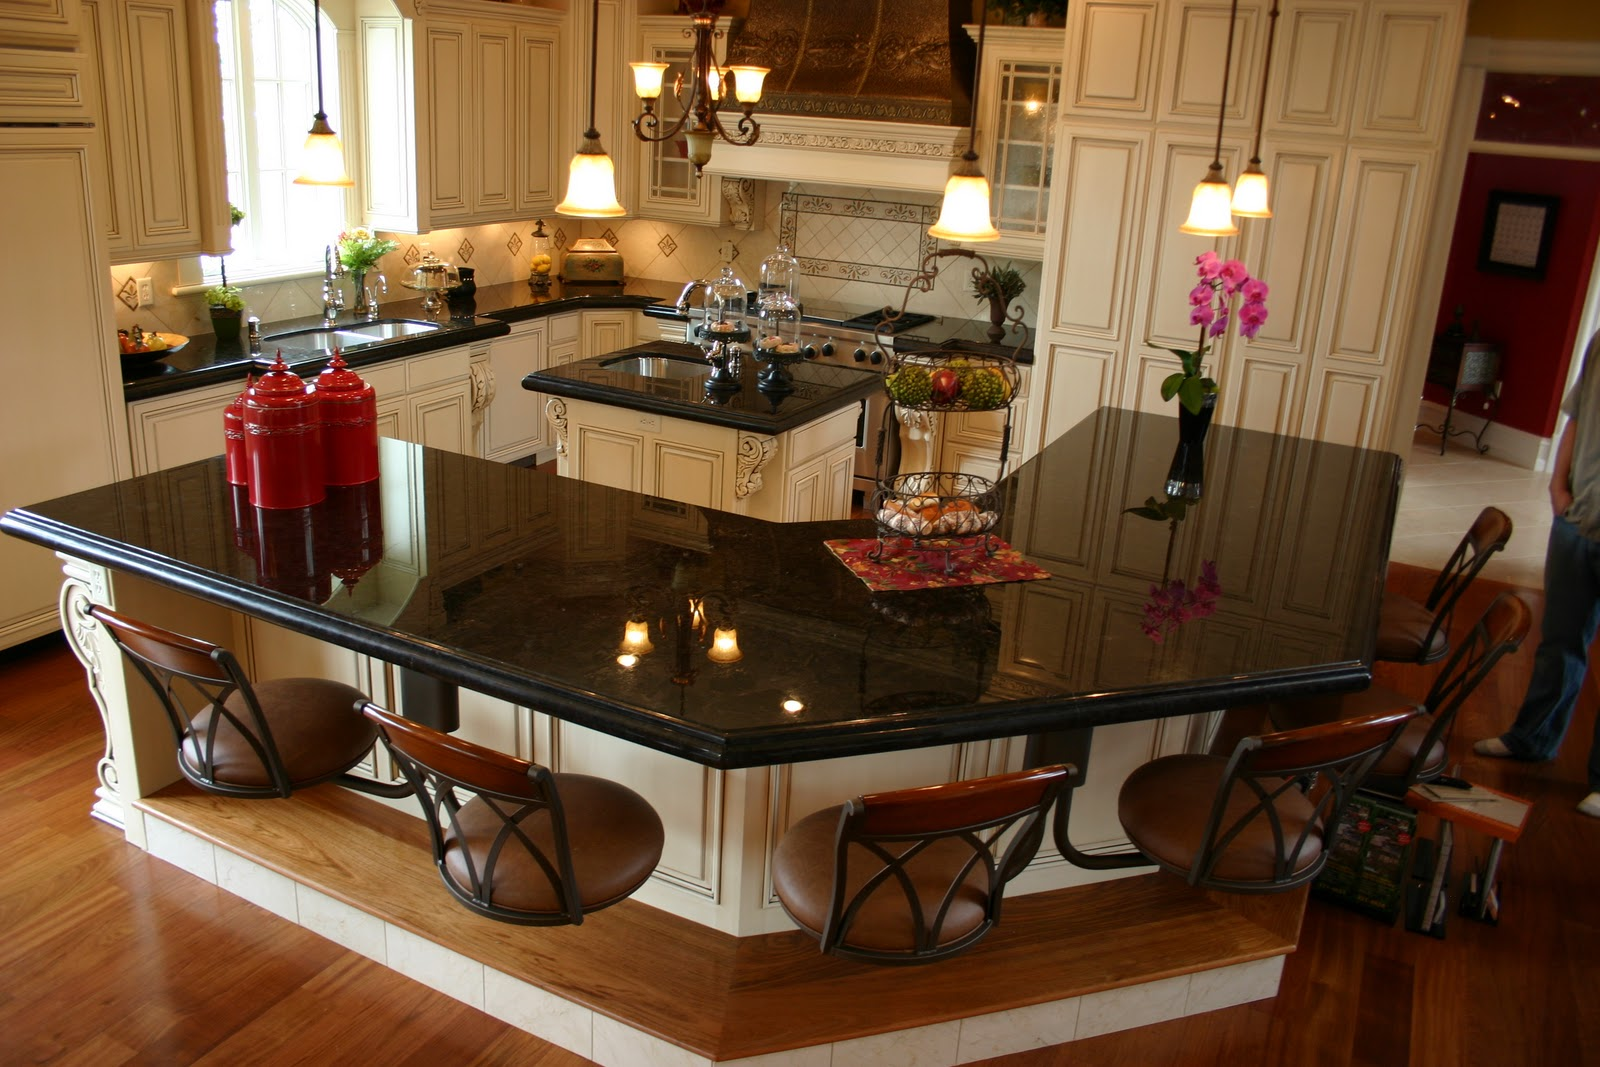 The granite gurus absolute black granite kitchen - Granite kitchen design ...